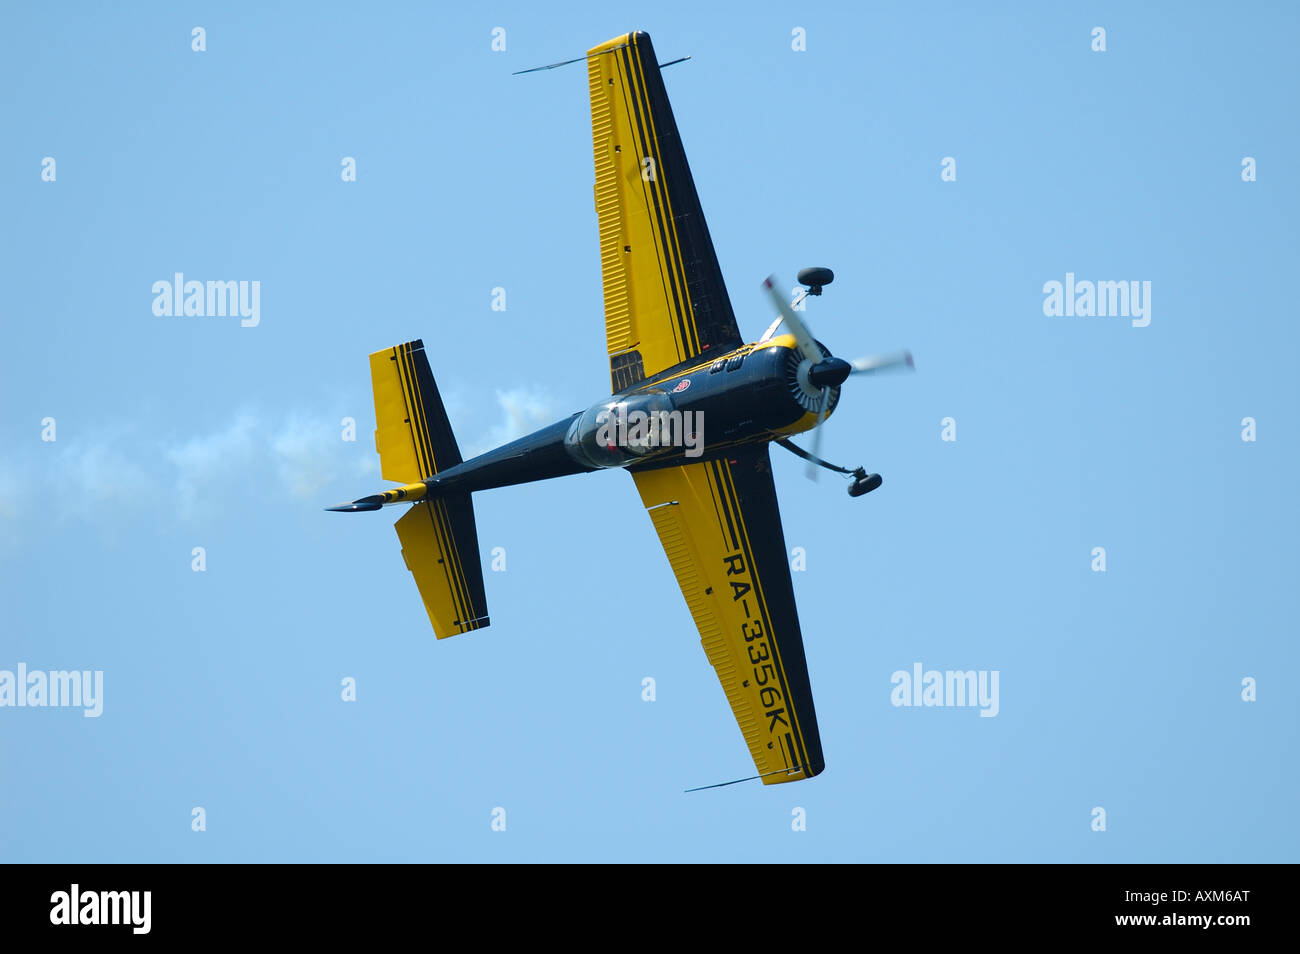 Yak 55 Russian and aerobatic plane turning a barrel, french airshow at La Ferte Alais,, France - Stock Image